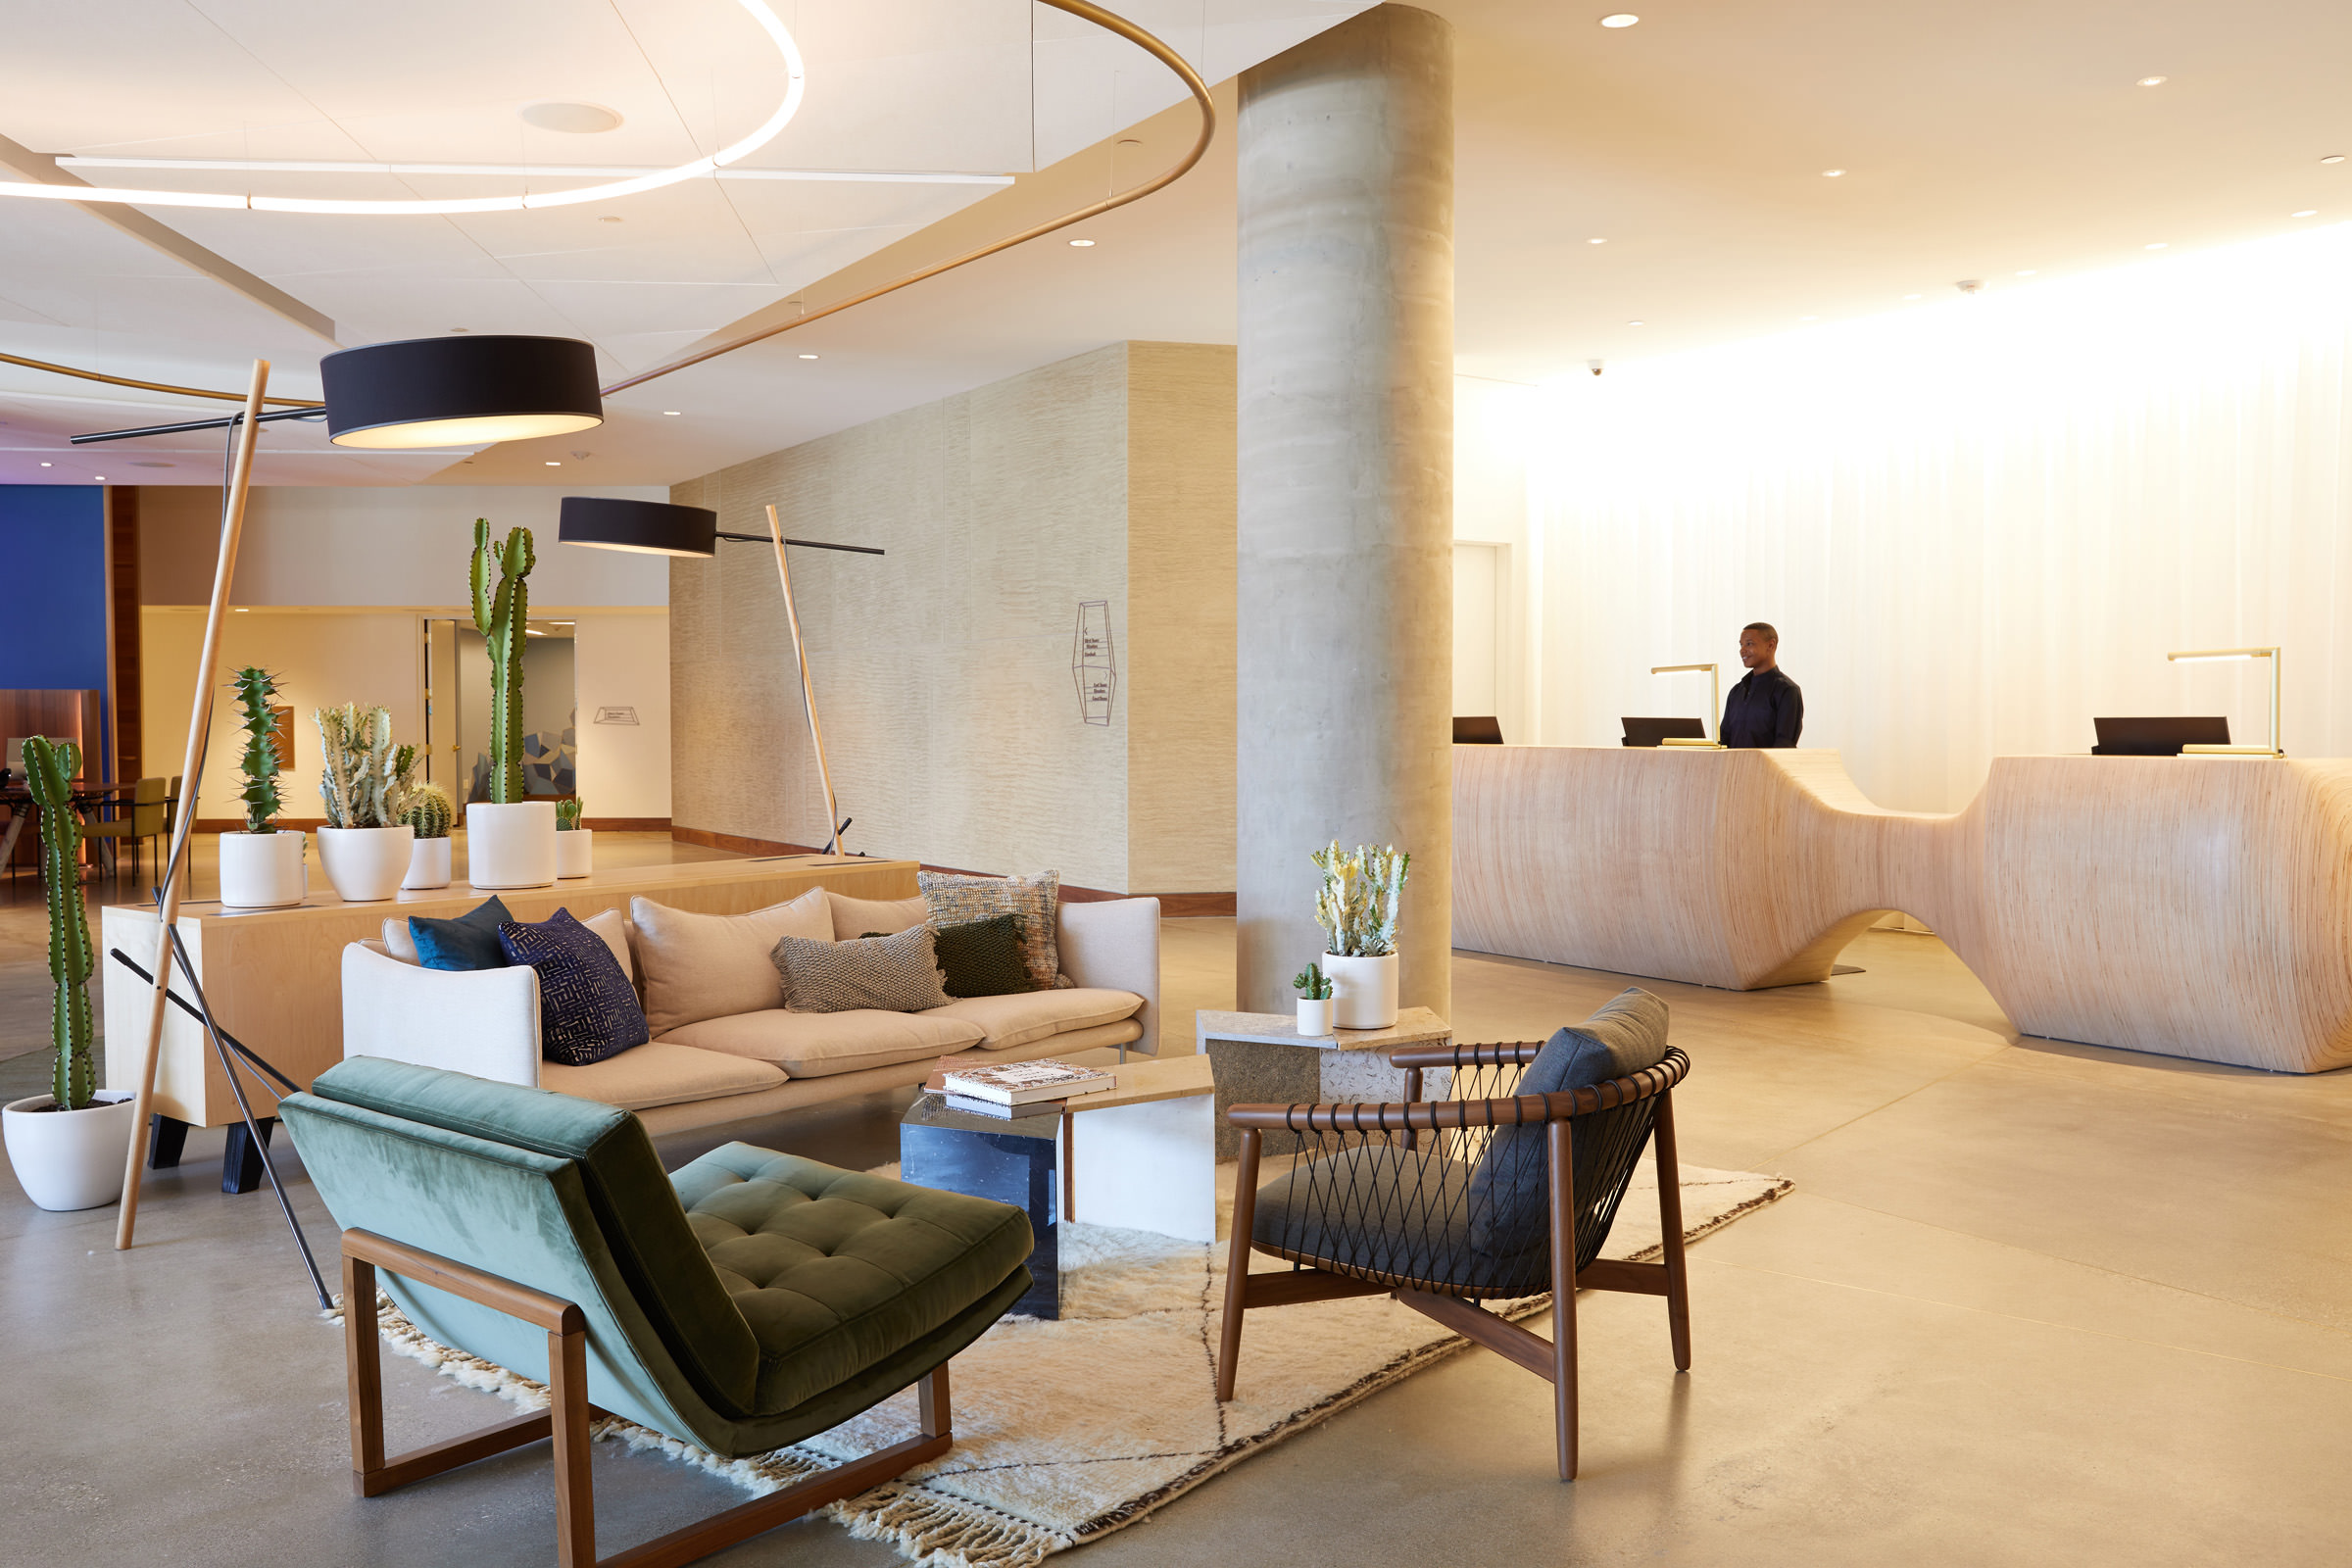 Edgy Luxury Comes To Los Angeles Via The Jeremy